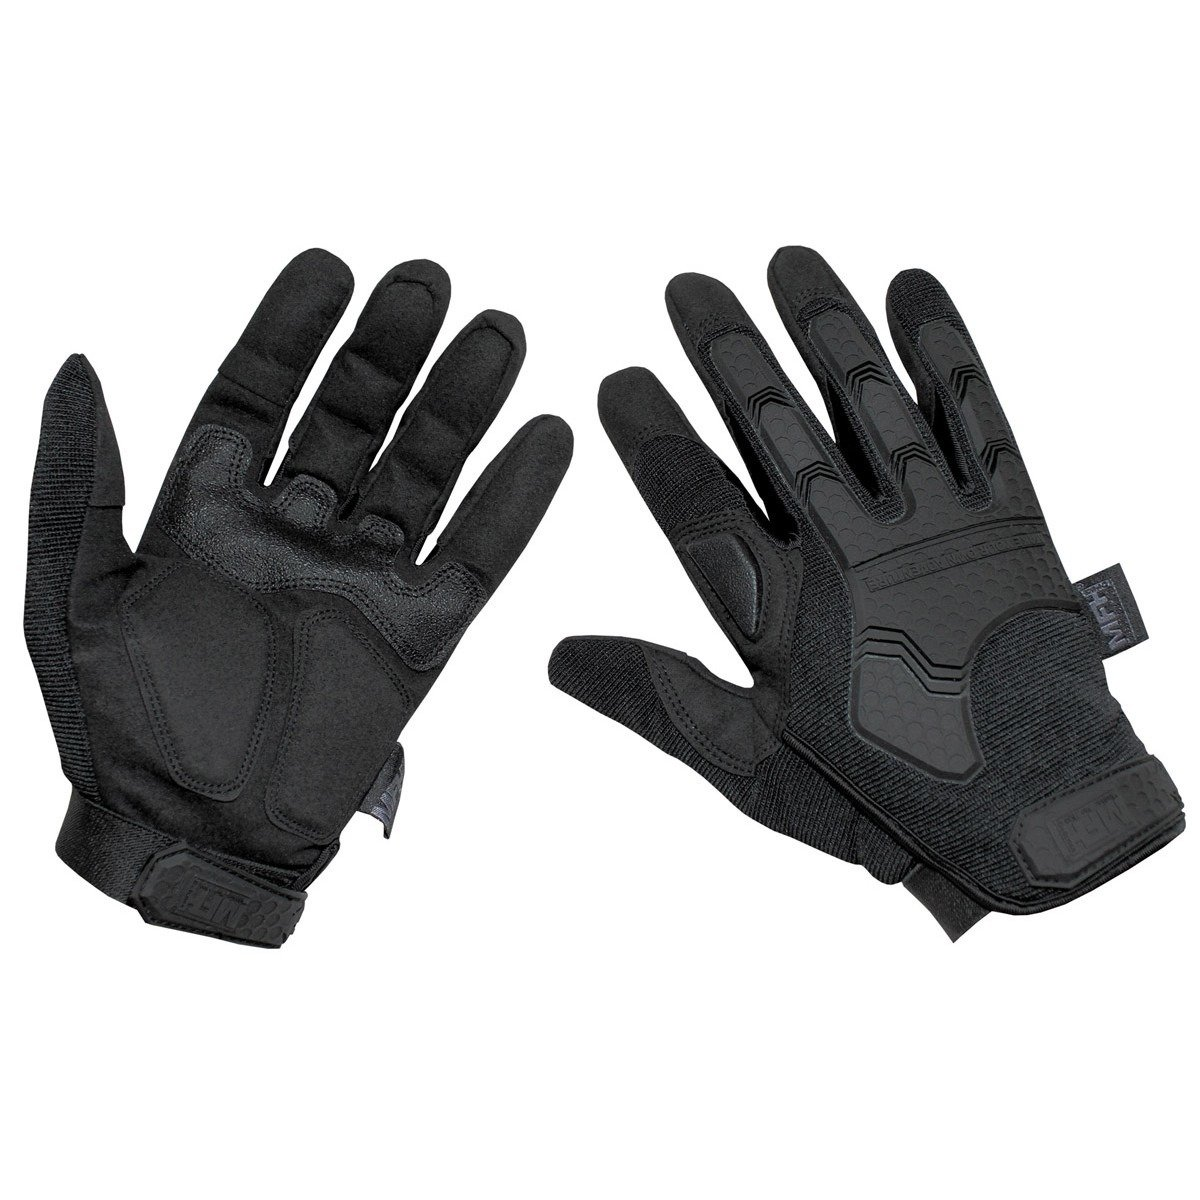 Viper Tactical Gloves Leather Padded Security Gloves Military Police